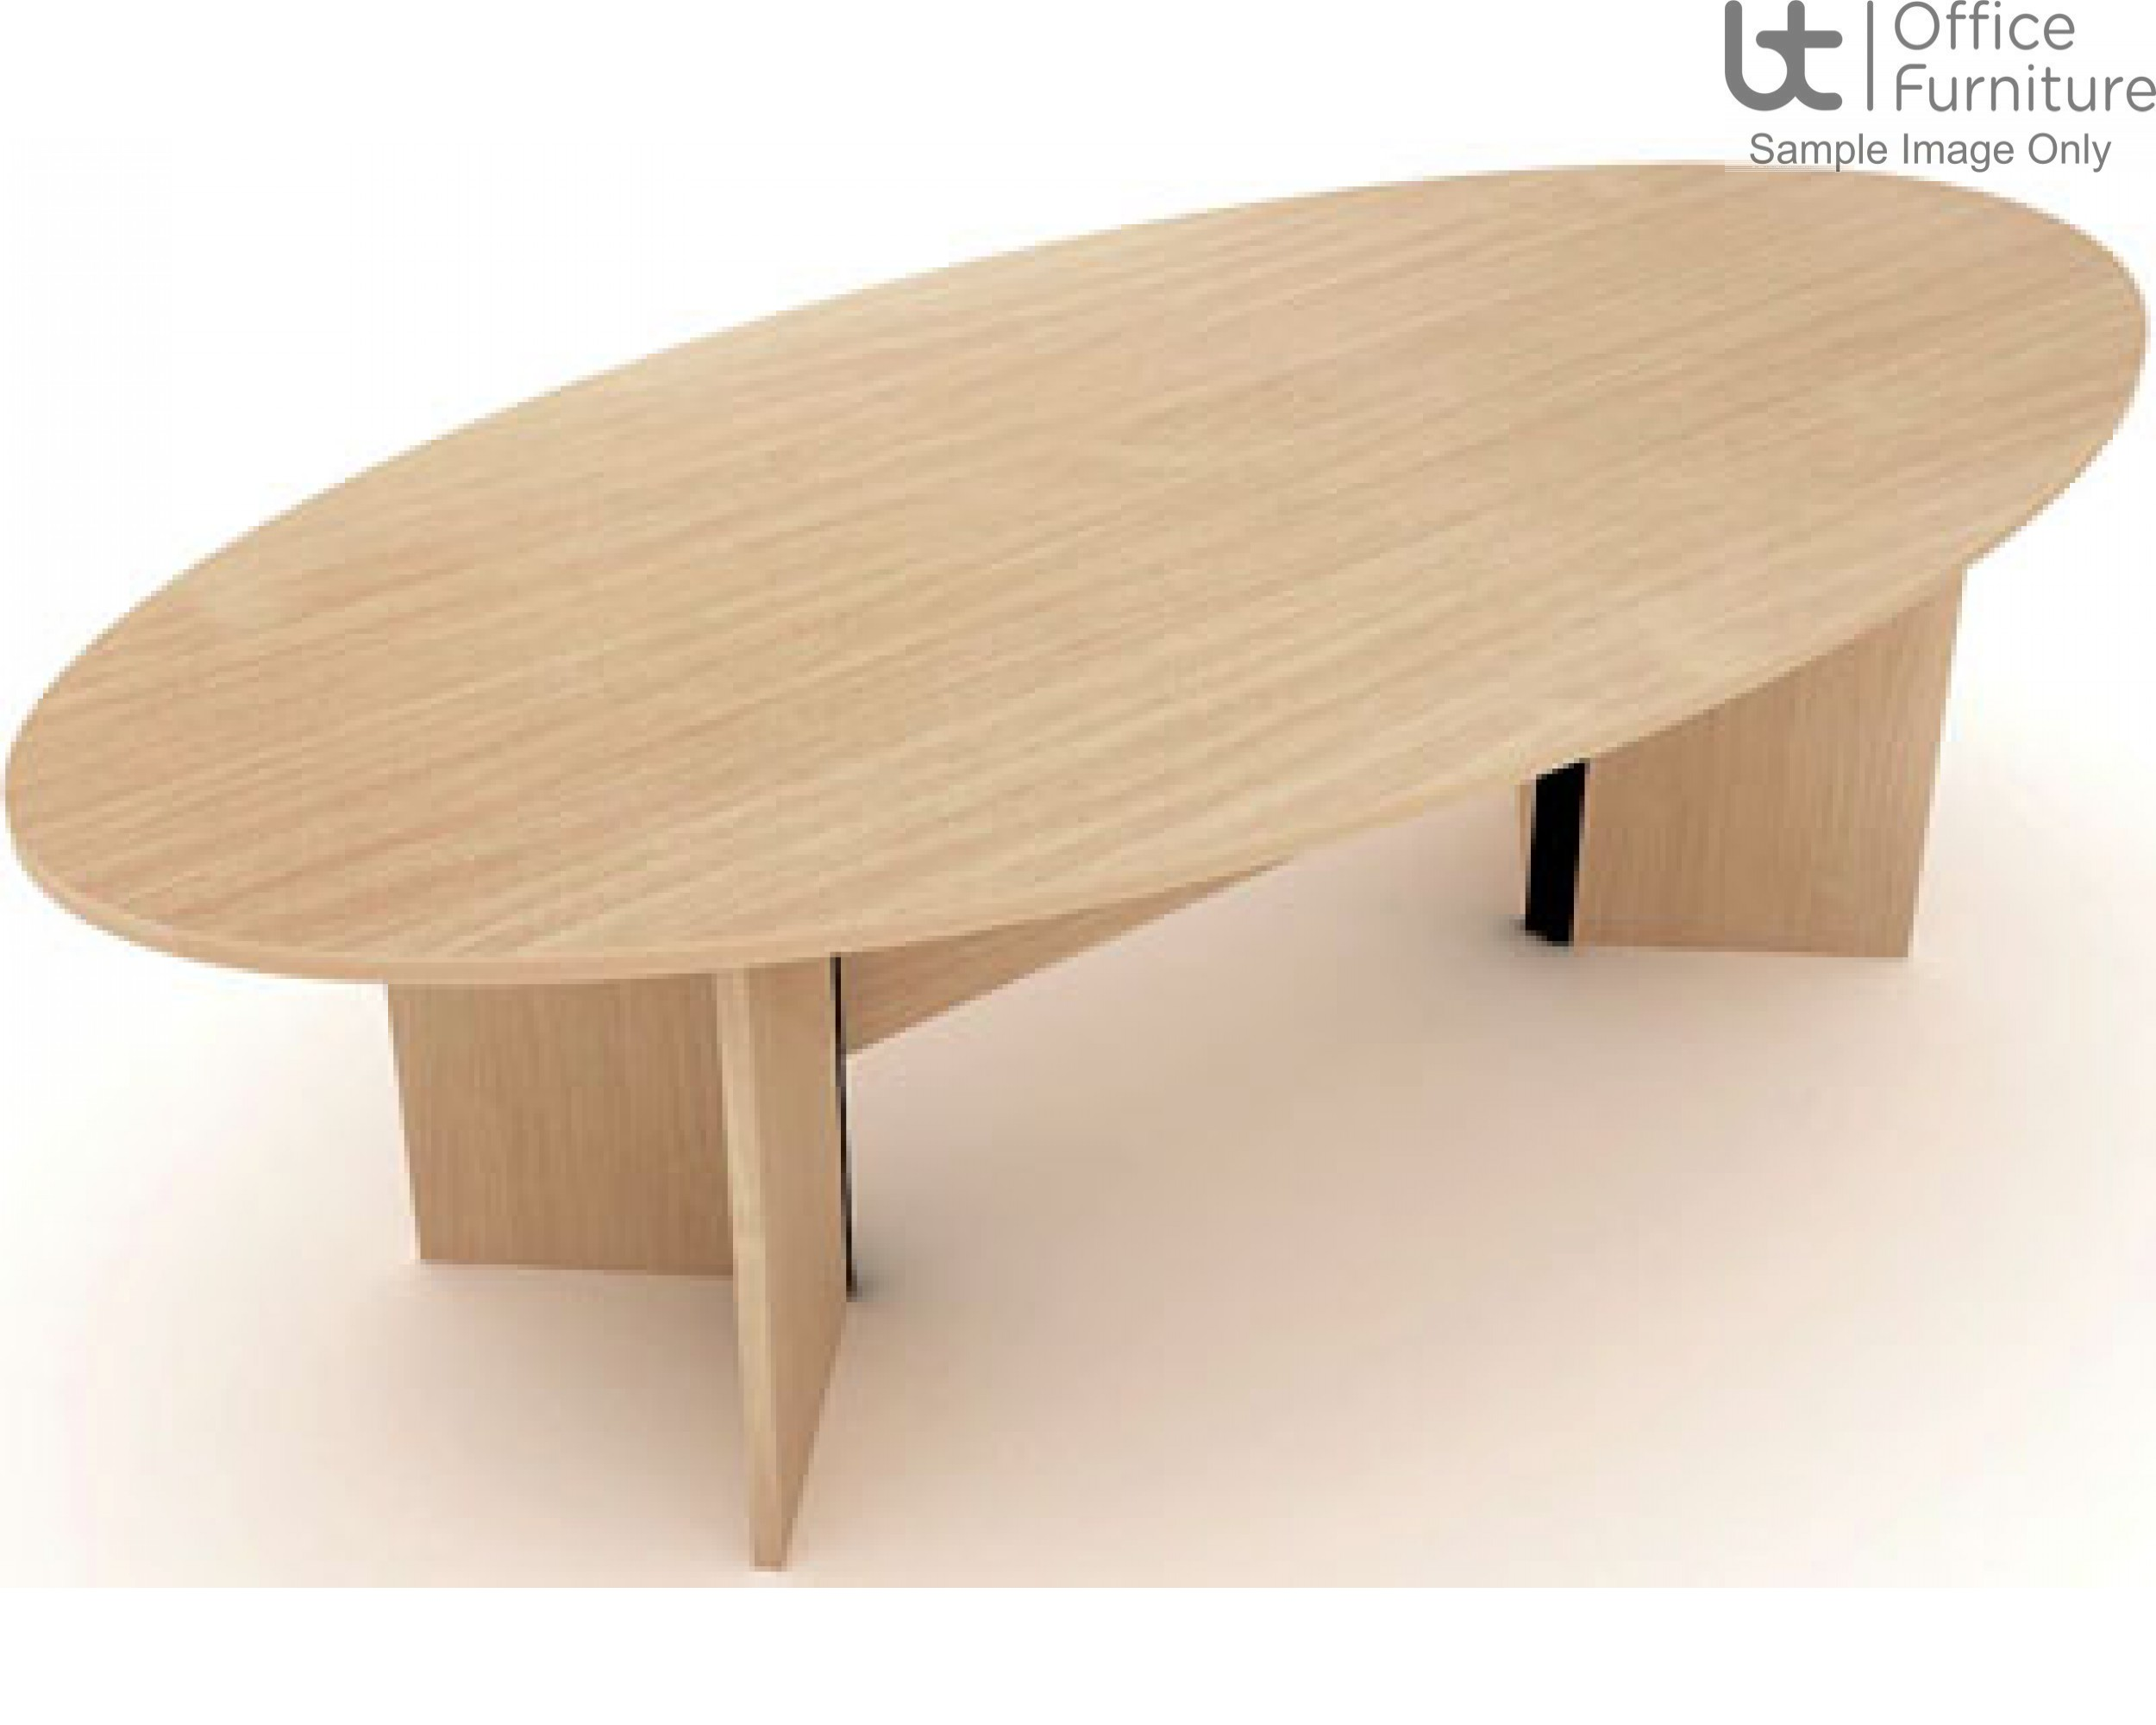 Elite Windsor Oval Conference Table Seats 8 People